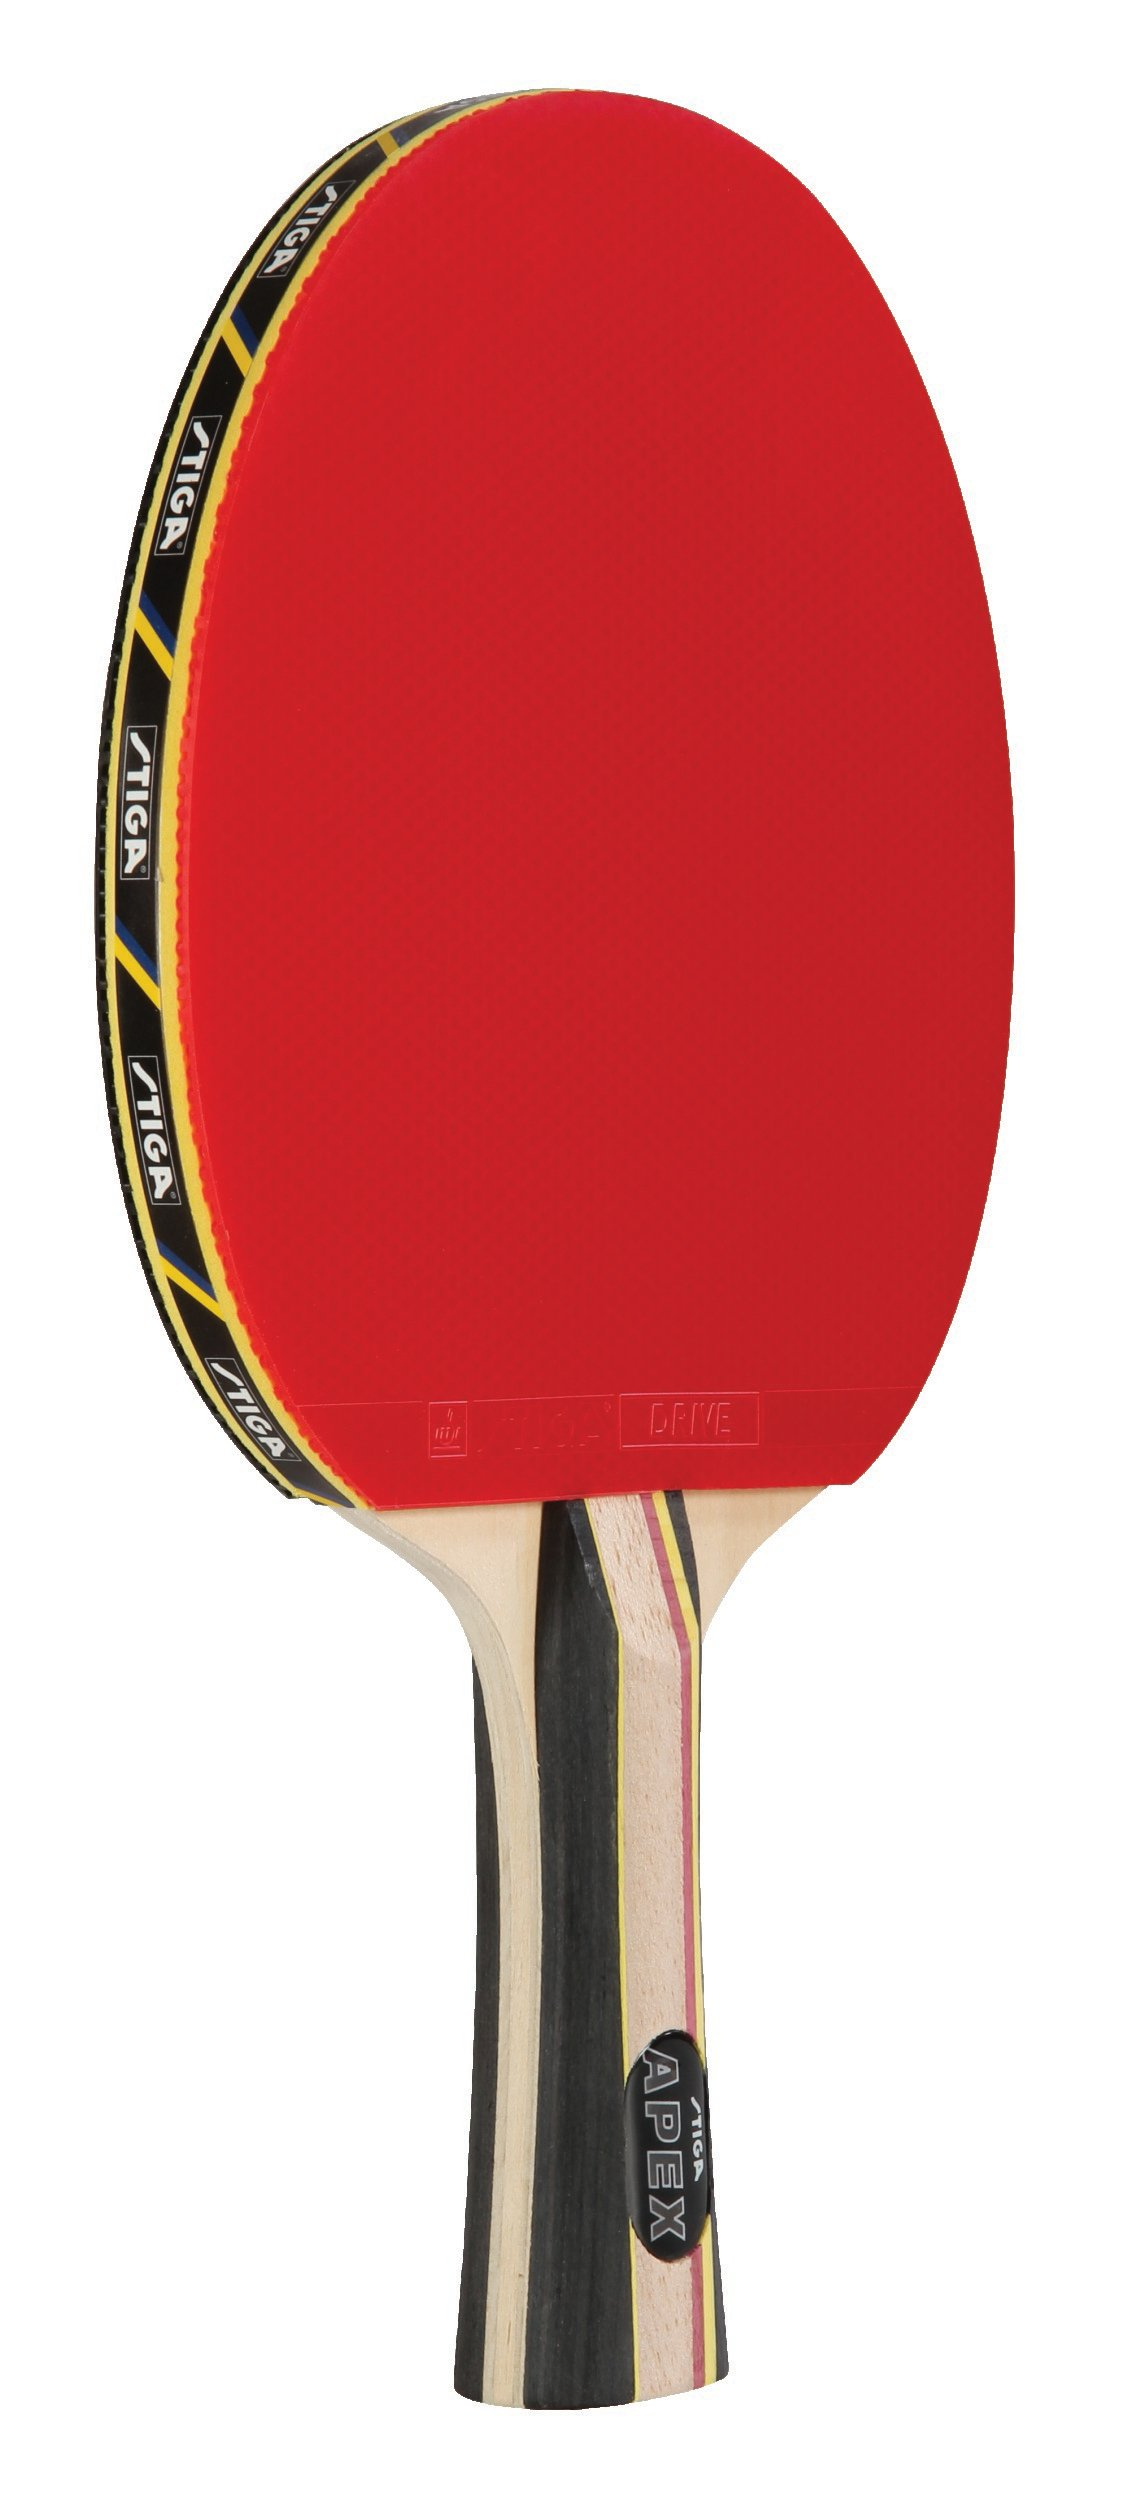 321796274272 on ping pong racket